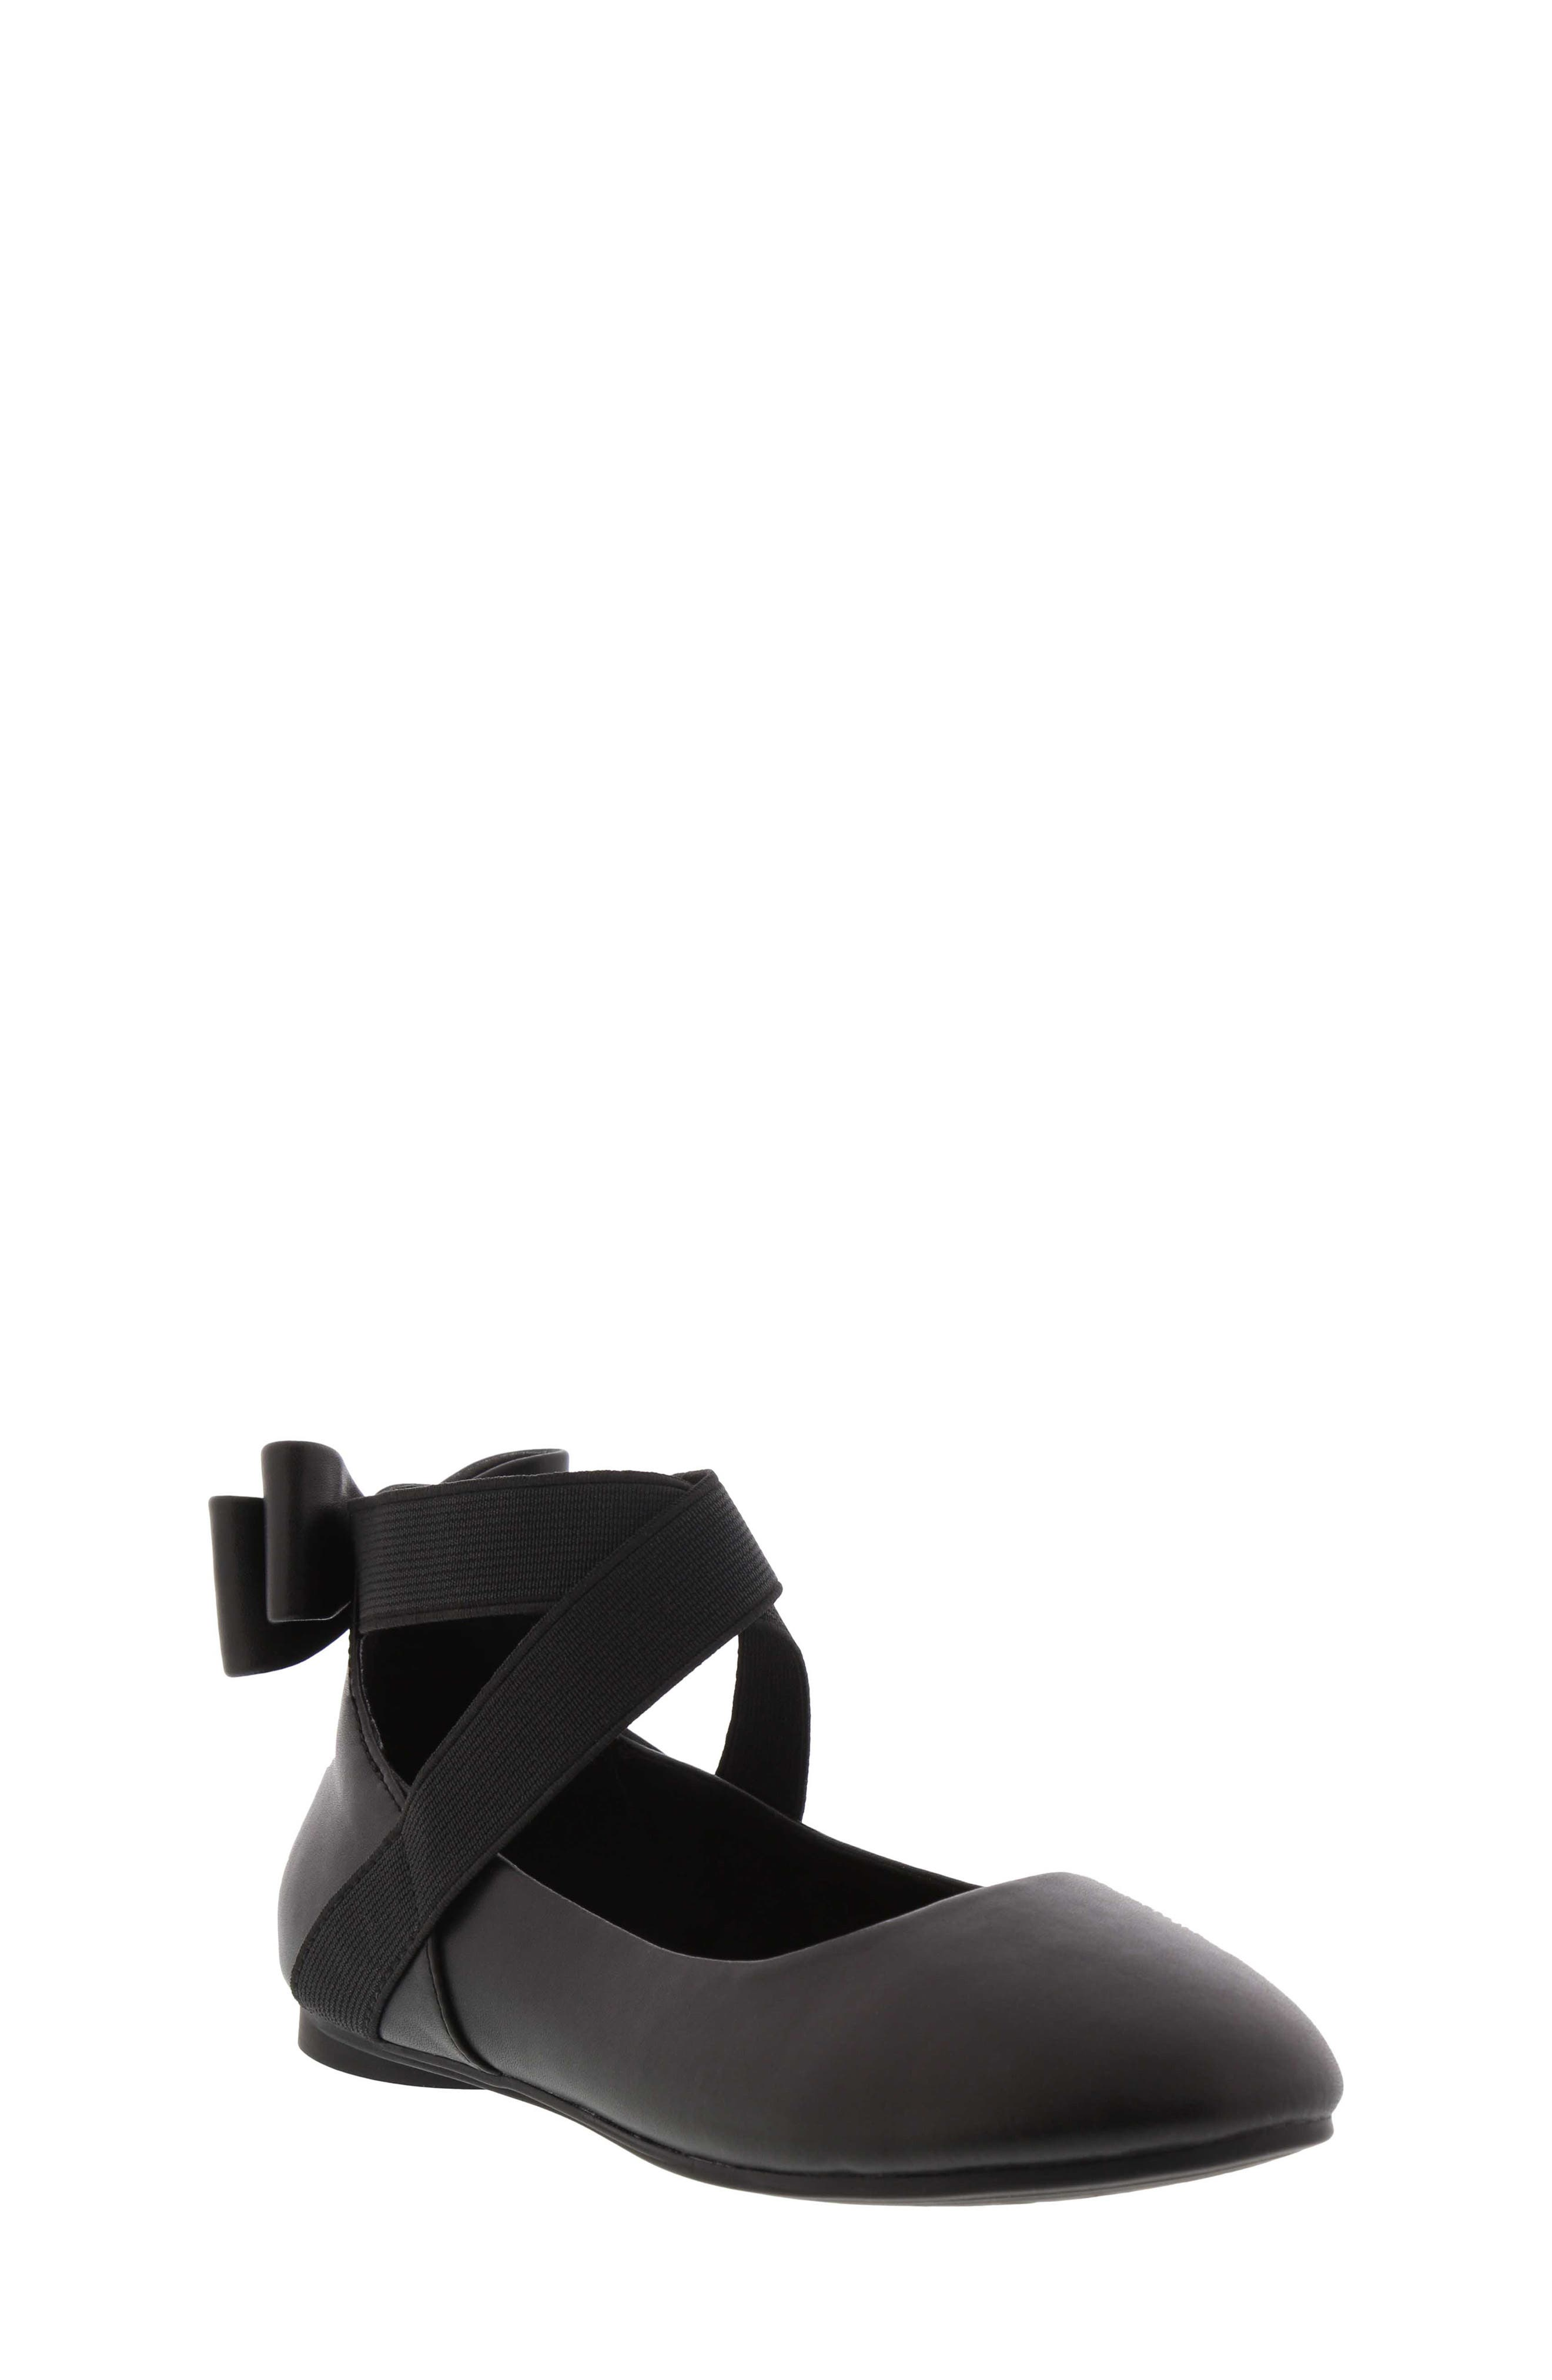 KENNETH COLE NEW YORK, Strappy Ballet Flat, Main thumbnail 1, color, 001